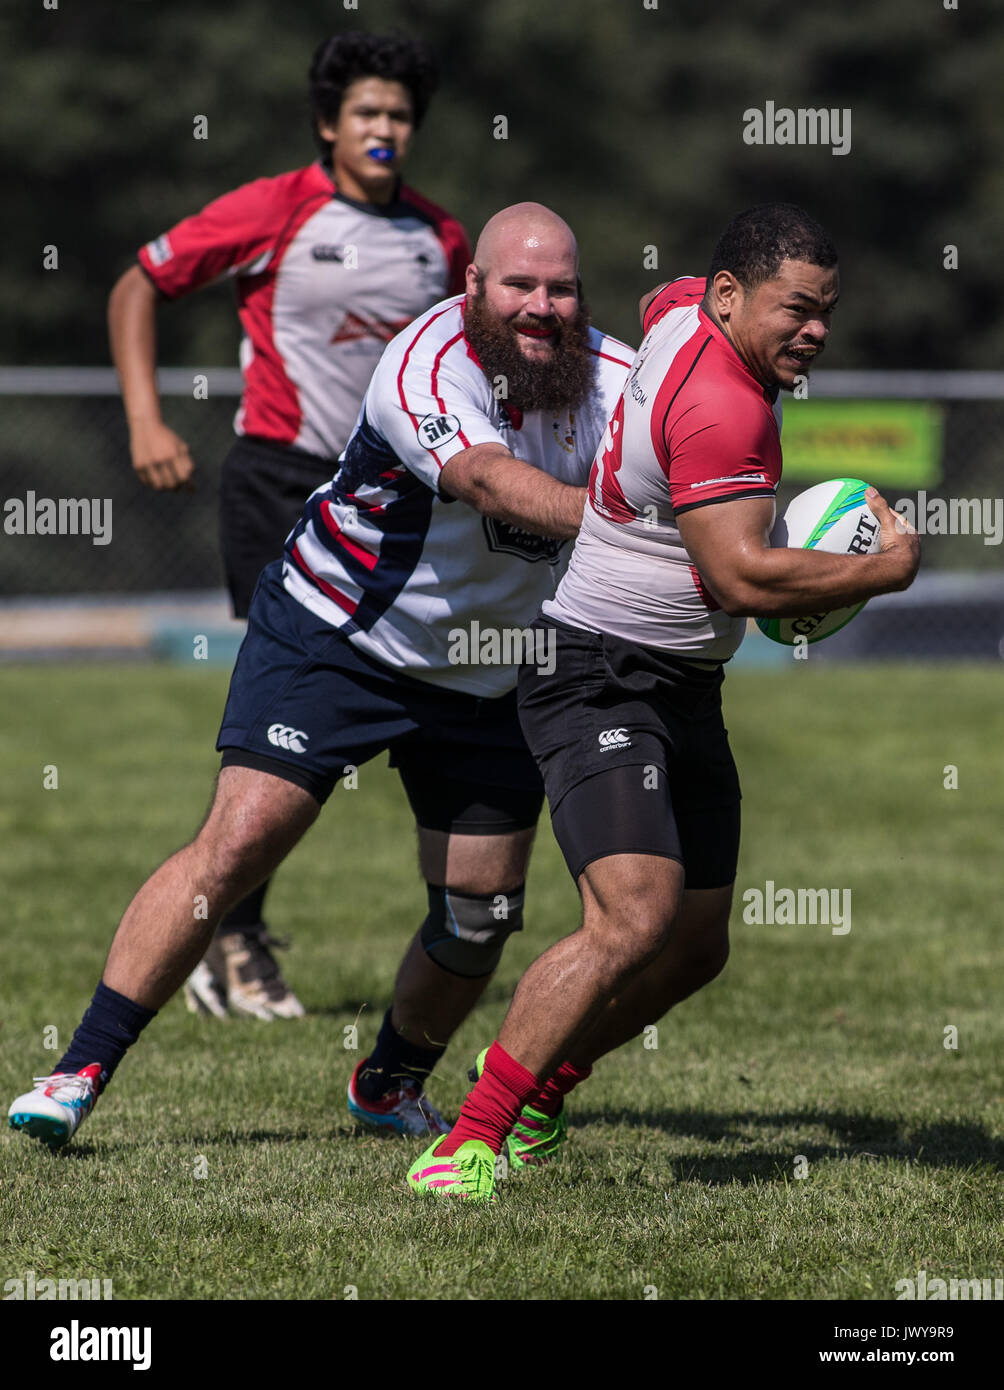 The Bald Eagles vs. Chico Mighty Oaks at the Rugby Sevens Tournament in Mount Shasta, California. Stock Photo